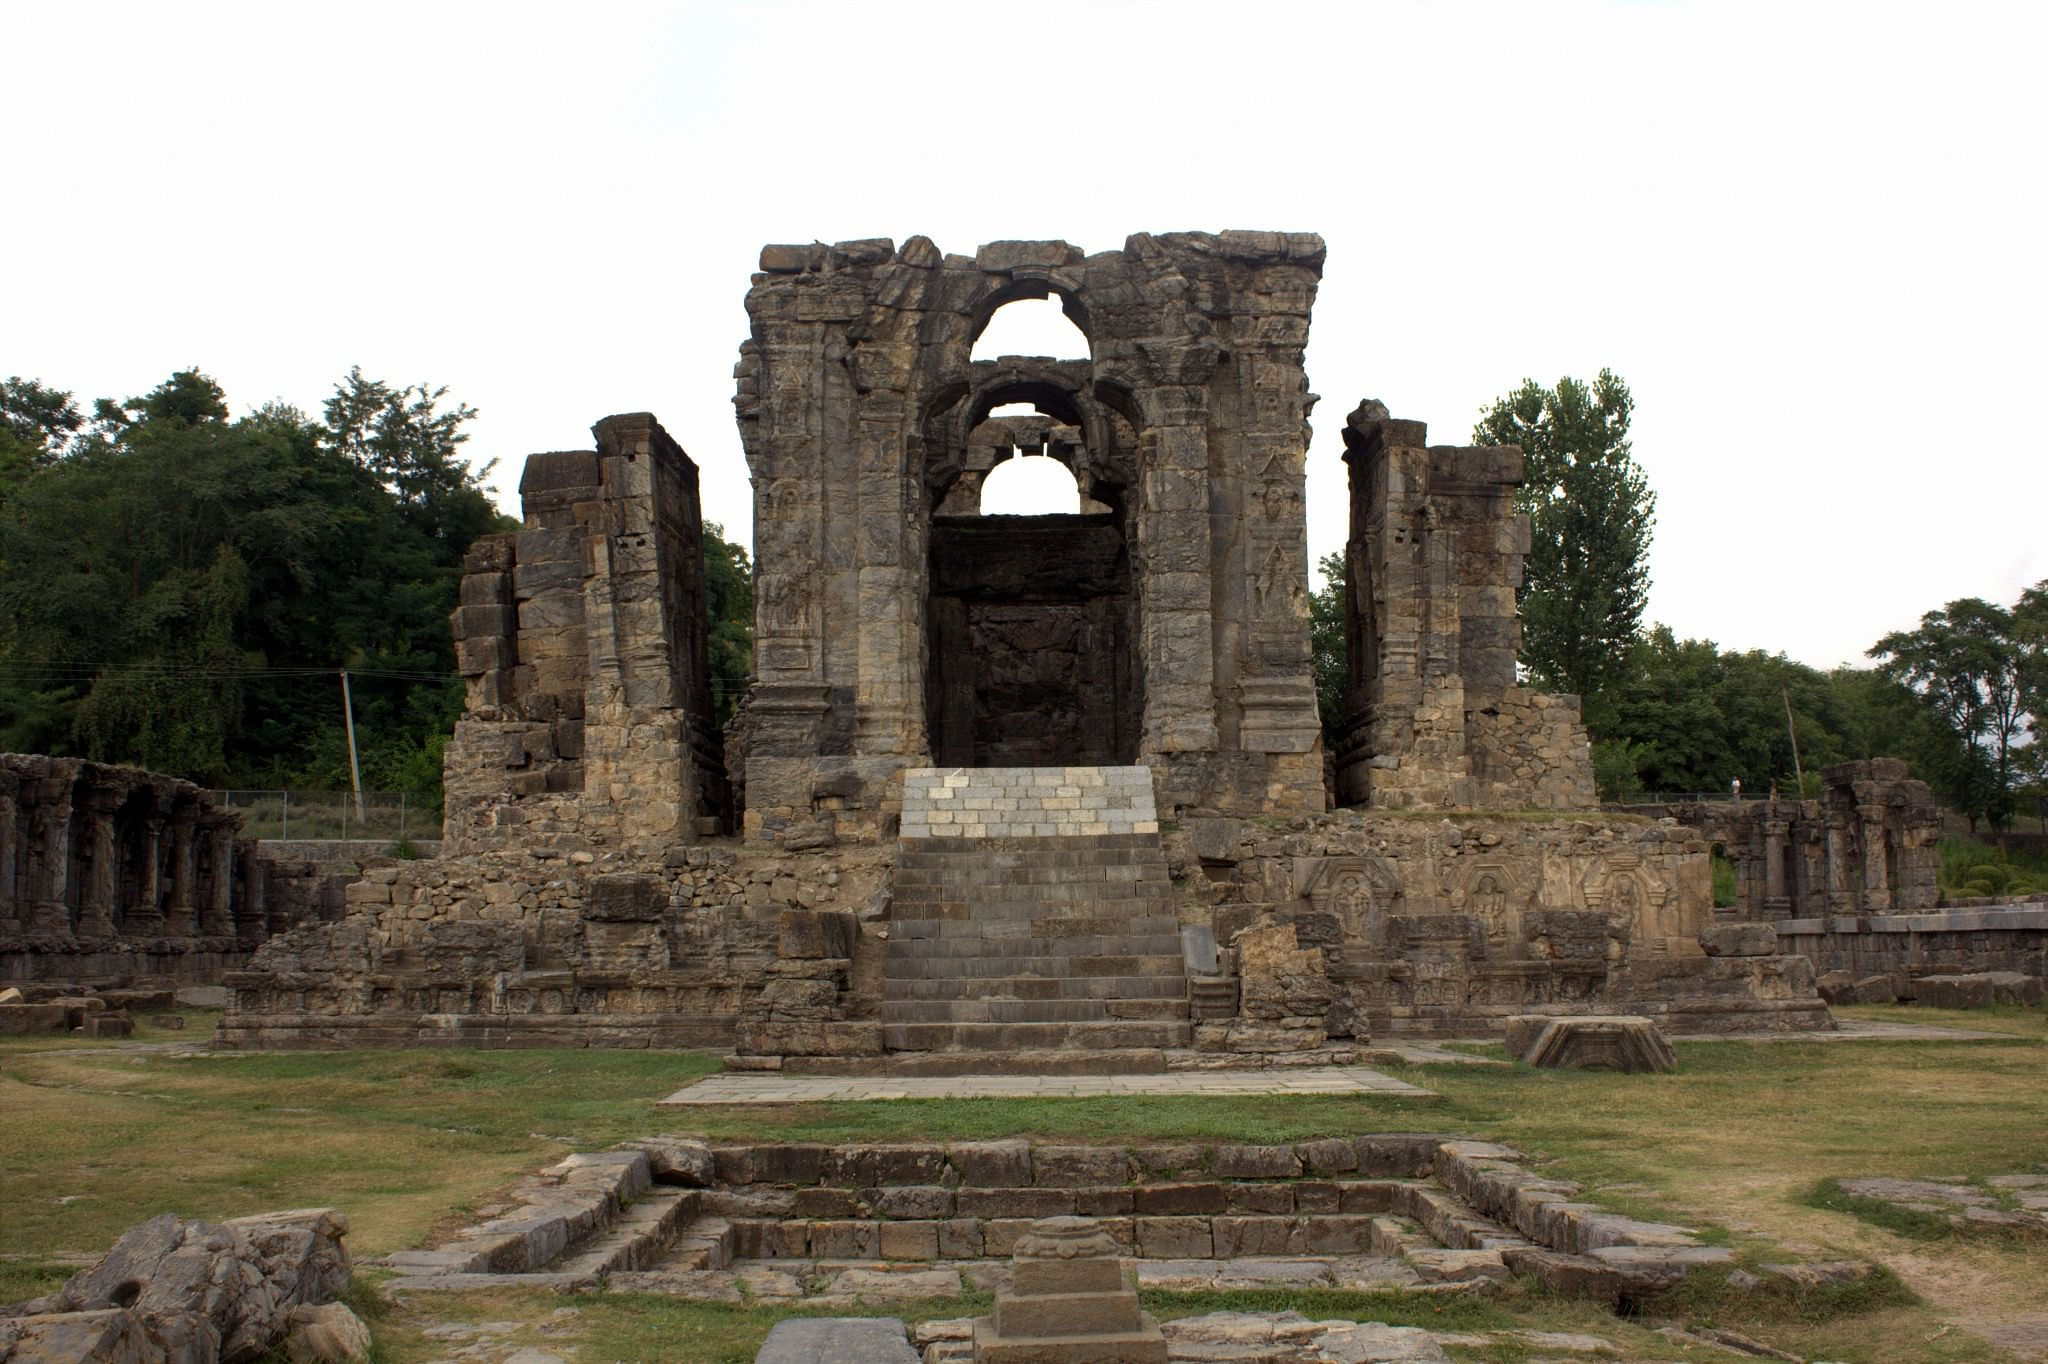 Ruins of the Martand Sun Temple Pic source: http://www.holidayiq.com/Martand-Sun-Temple-Kashmir-Sightseeing-405-9915.html